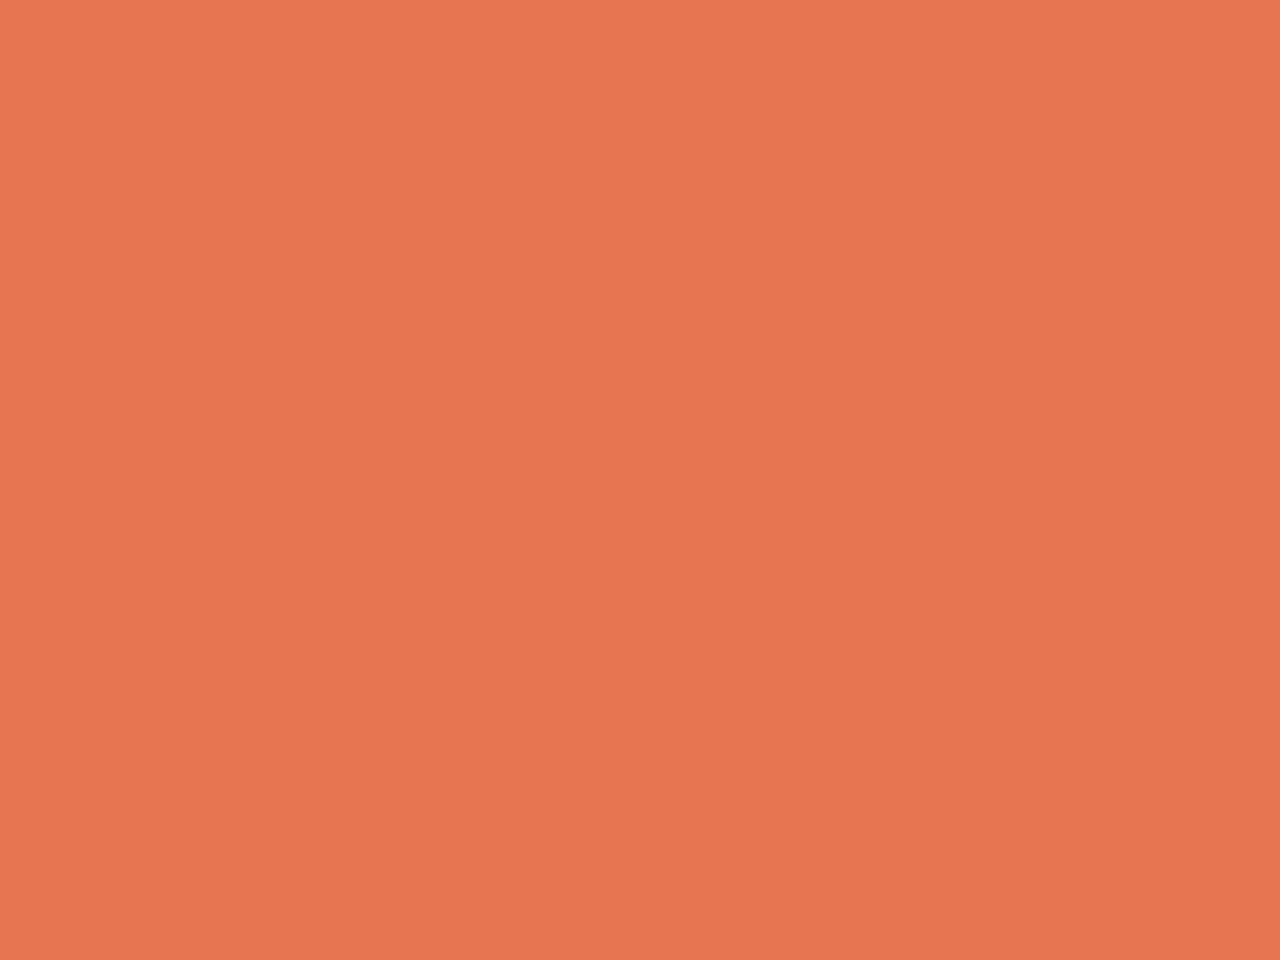 1280x960 Burnt Sienna Solid Color Background